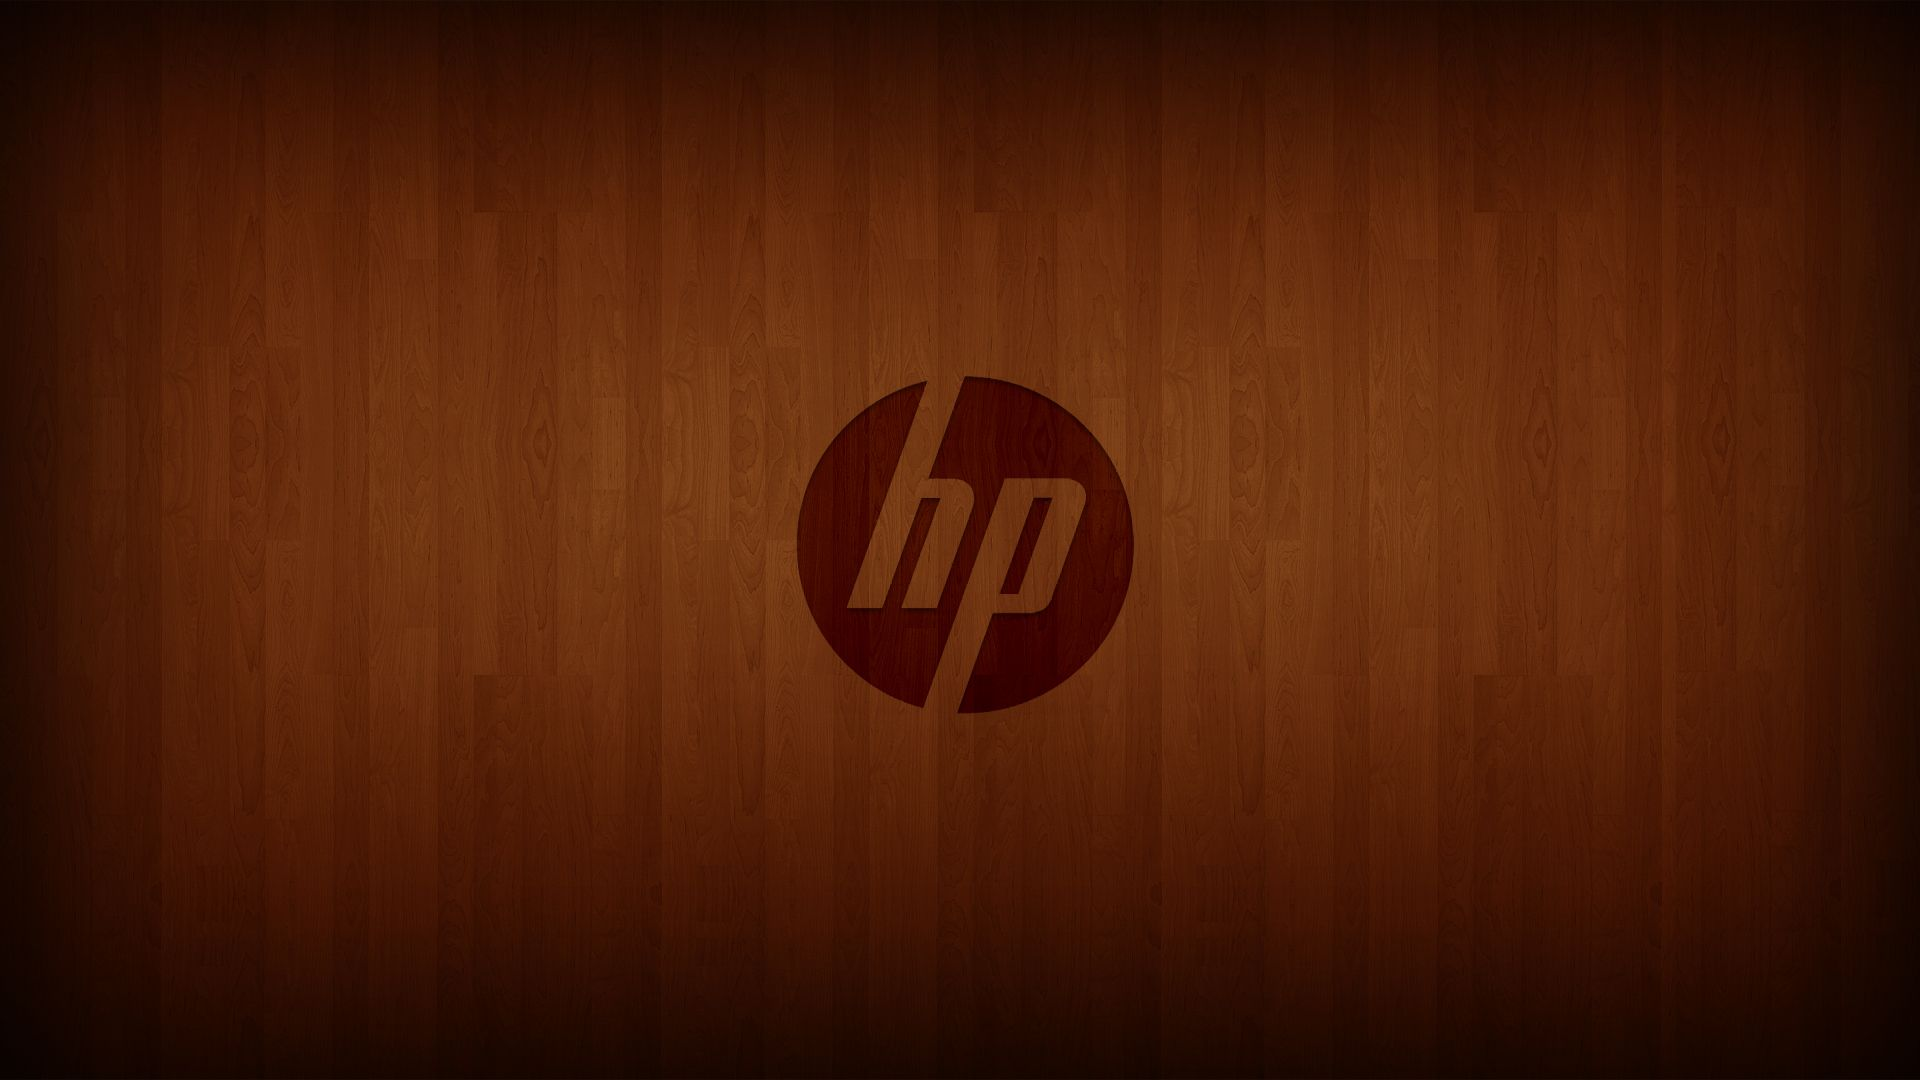 hp laptop wallpapers | hd wallpapers | pinterest | laptop wallpaper